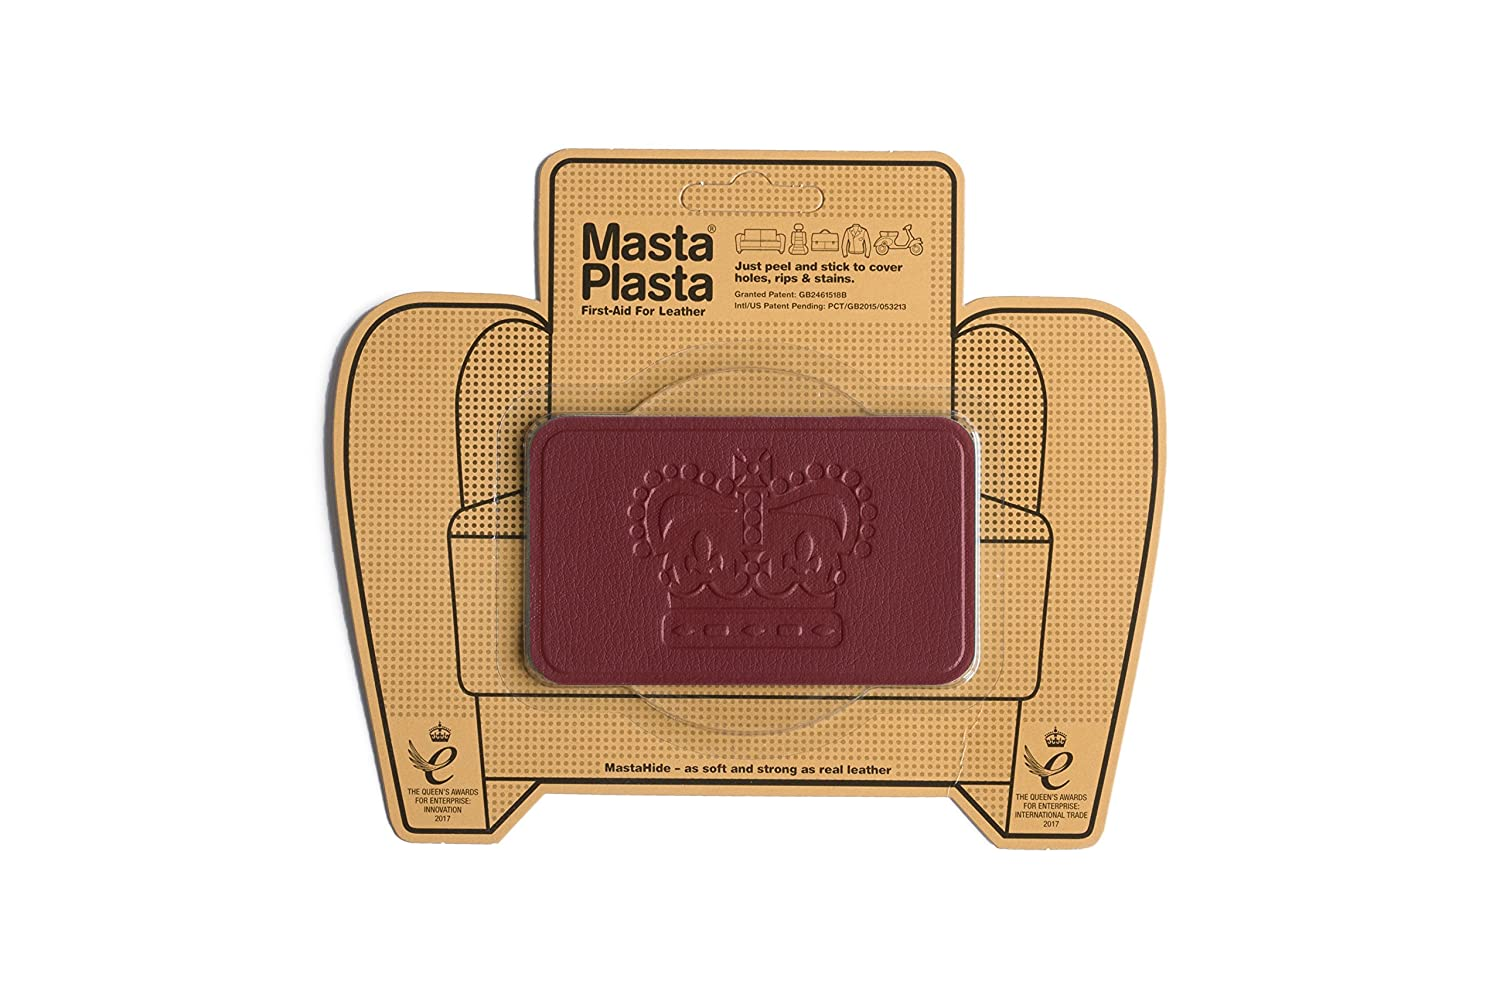 MastaPlasta Self-Adhesive Patch for Leather and Vinyl Repair, Crown, Tan - Multiple Colors Available Mastaplasta Limited TANCROWN4X2.4USA